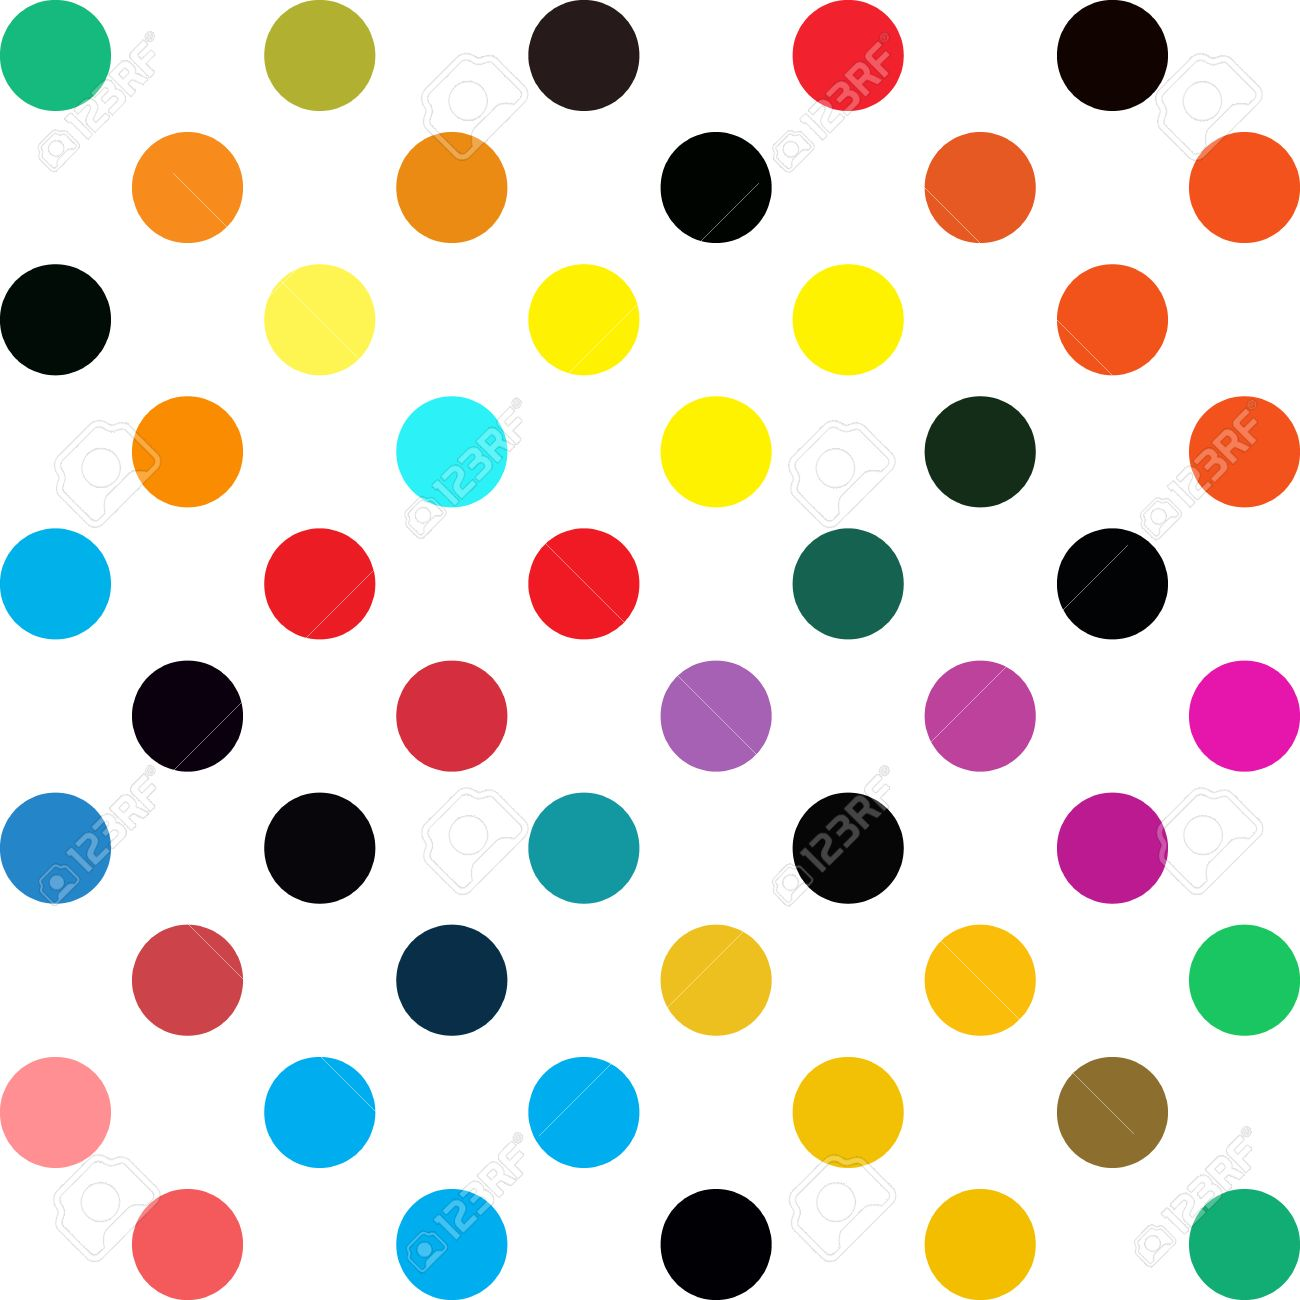 colorful polka dots background creative design templates royalty